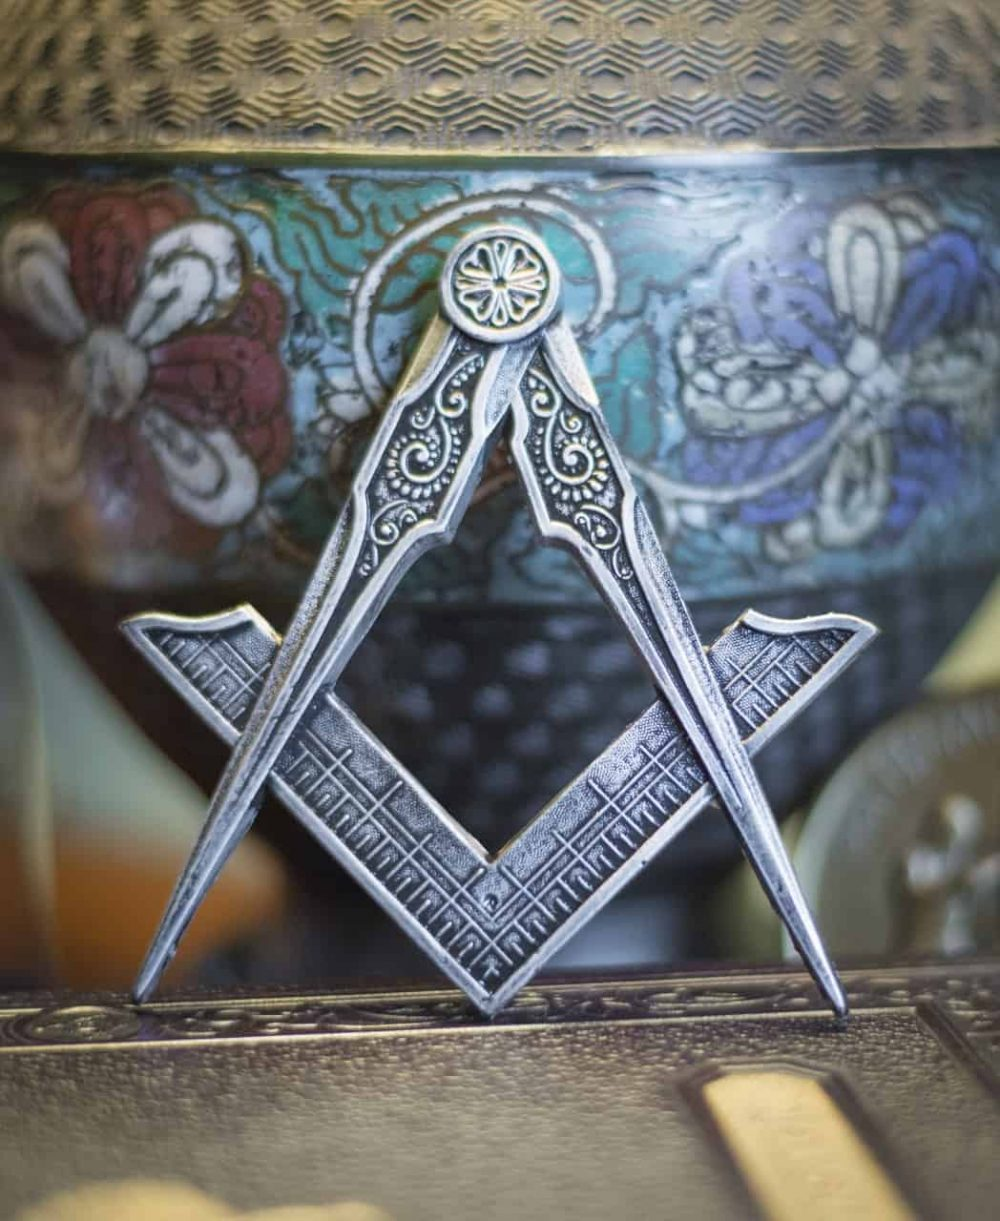 Square Compasses Freemason Masonic Ornament Magnet Pewter